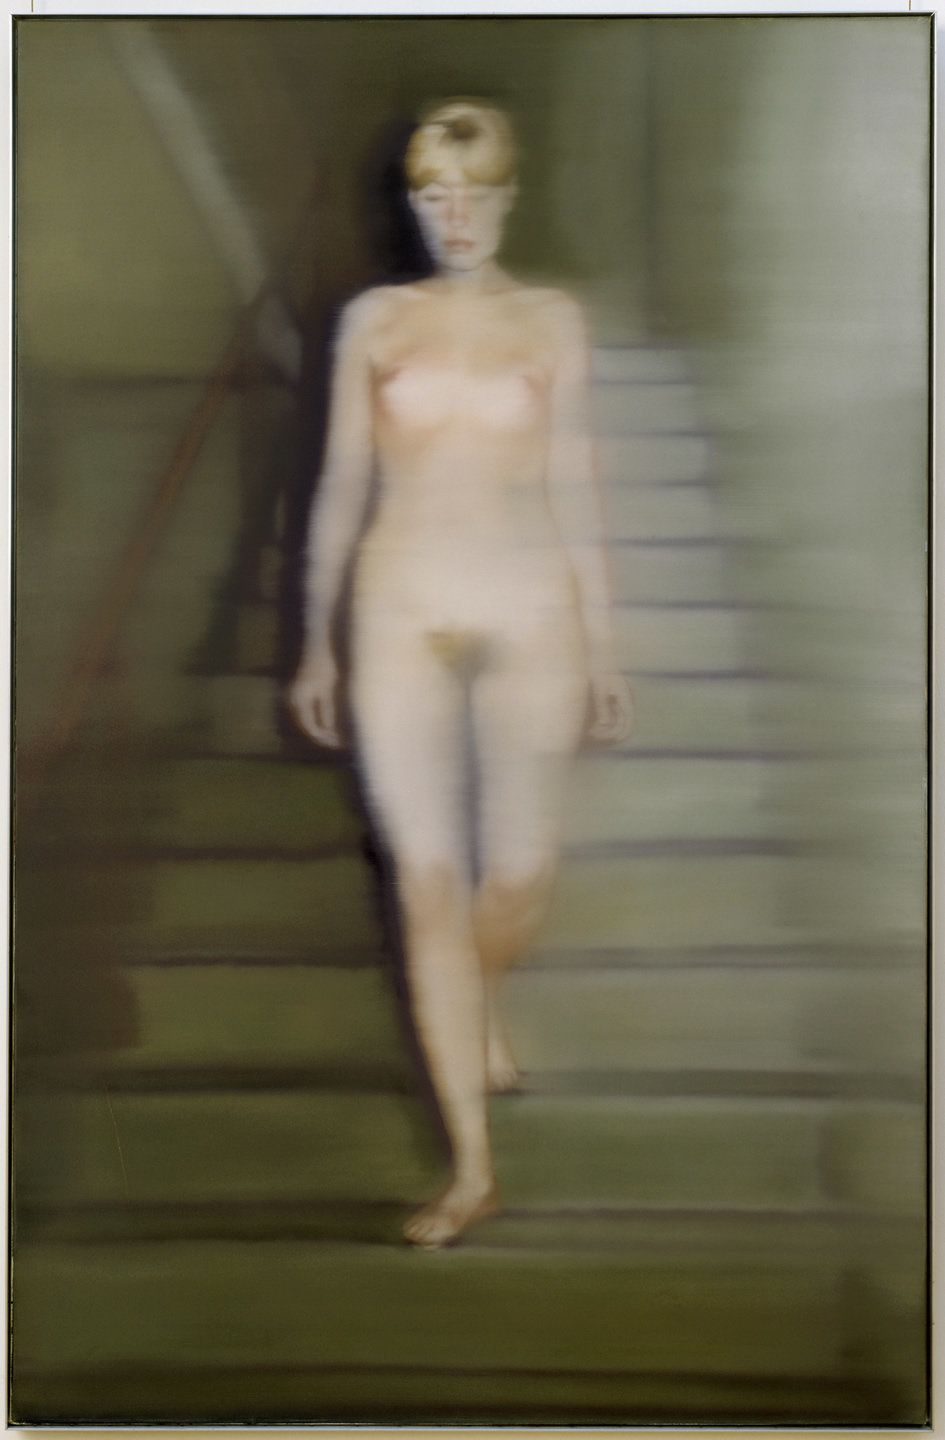 Gerhard Richter, Ema, Akt auf einer Treppe (Ema, Nude on a Staircase), 1966. Oil on canvas